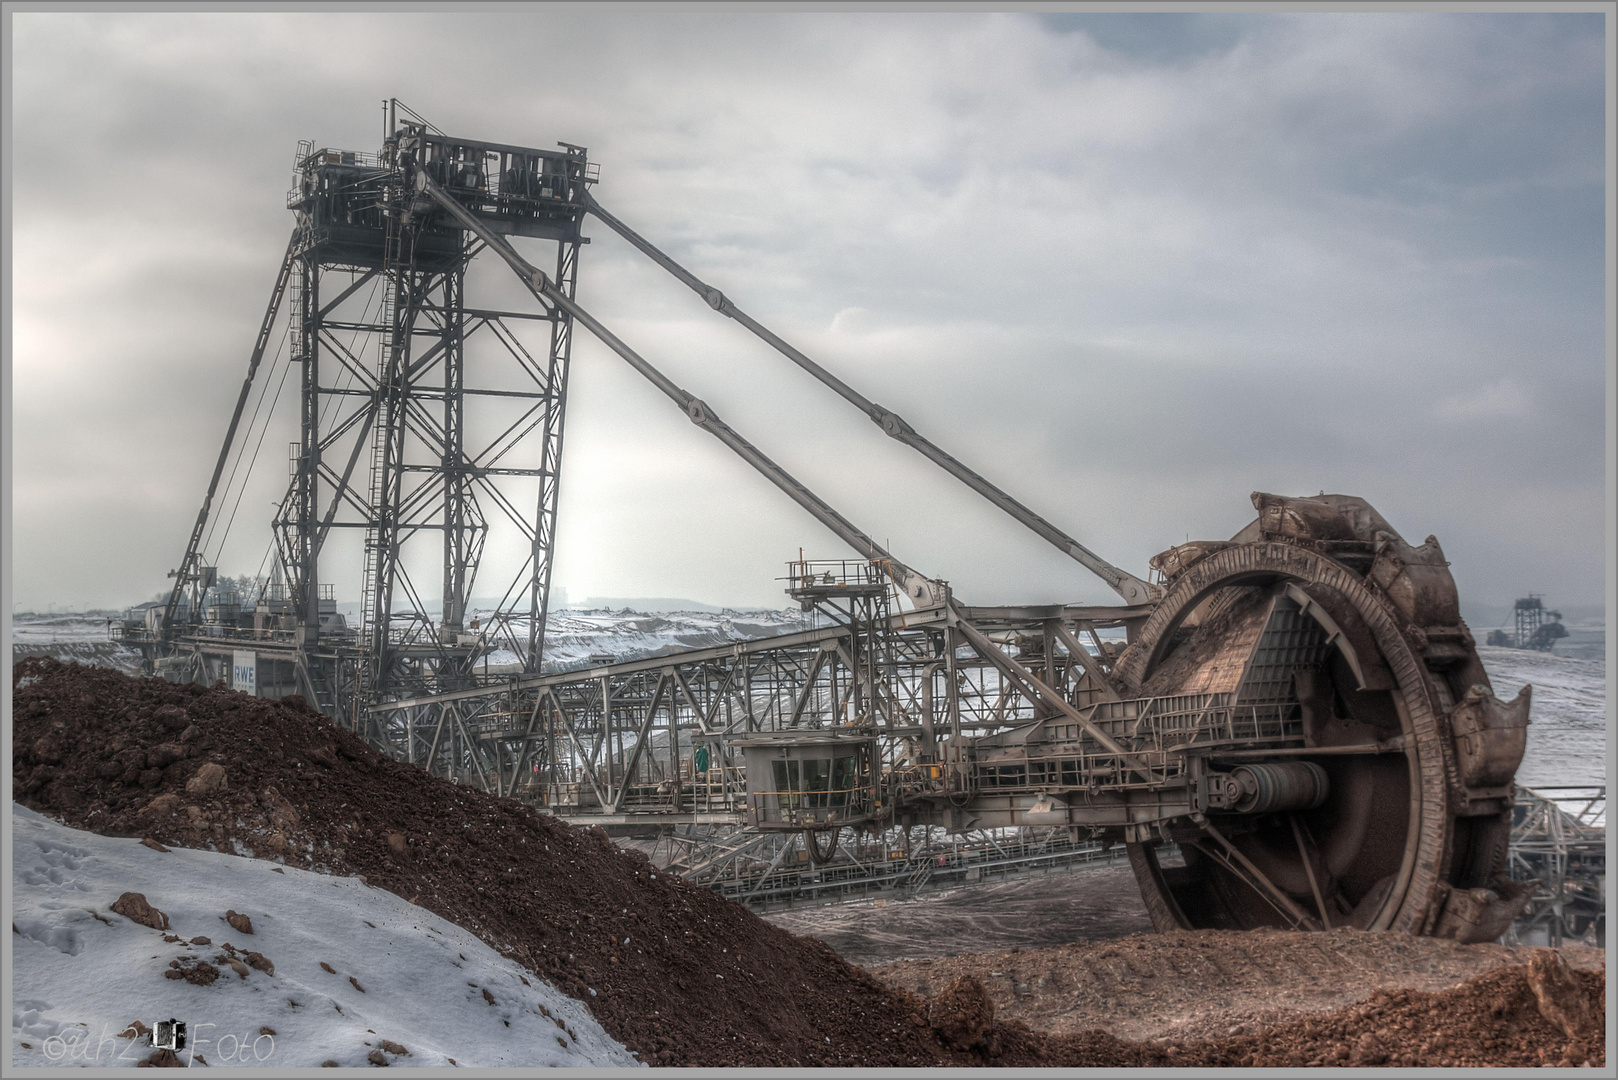 Bagger 255 in Action